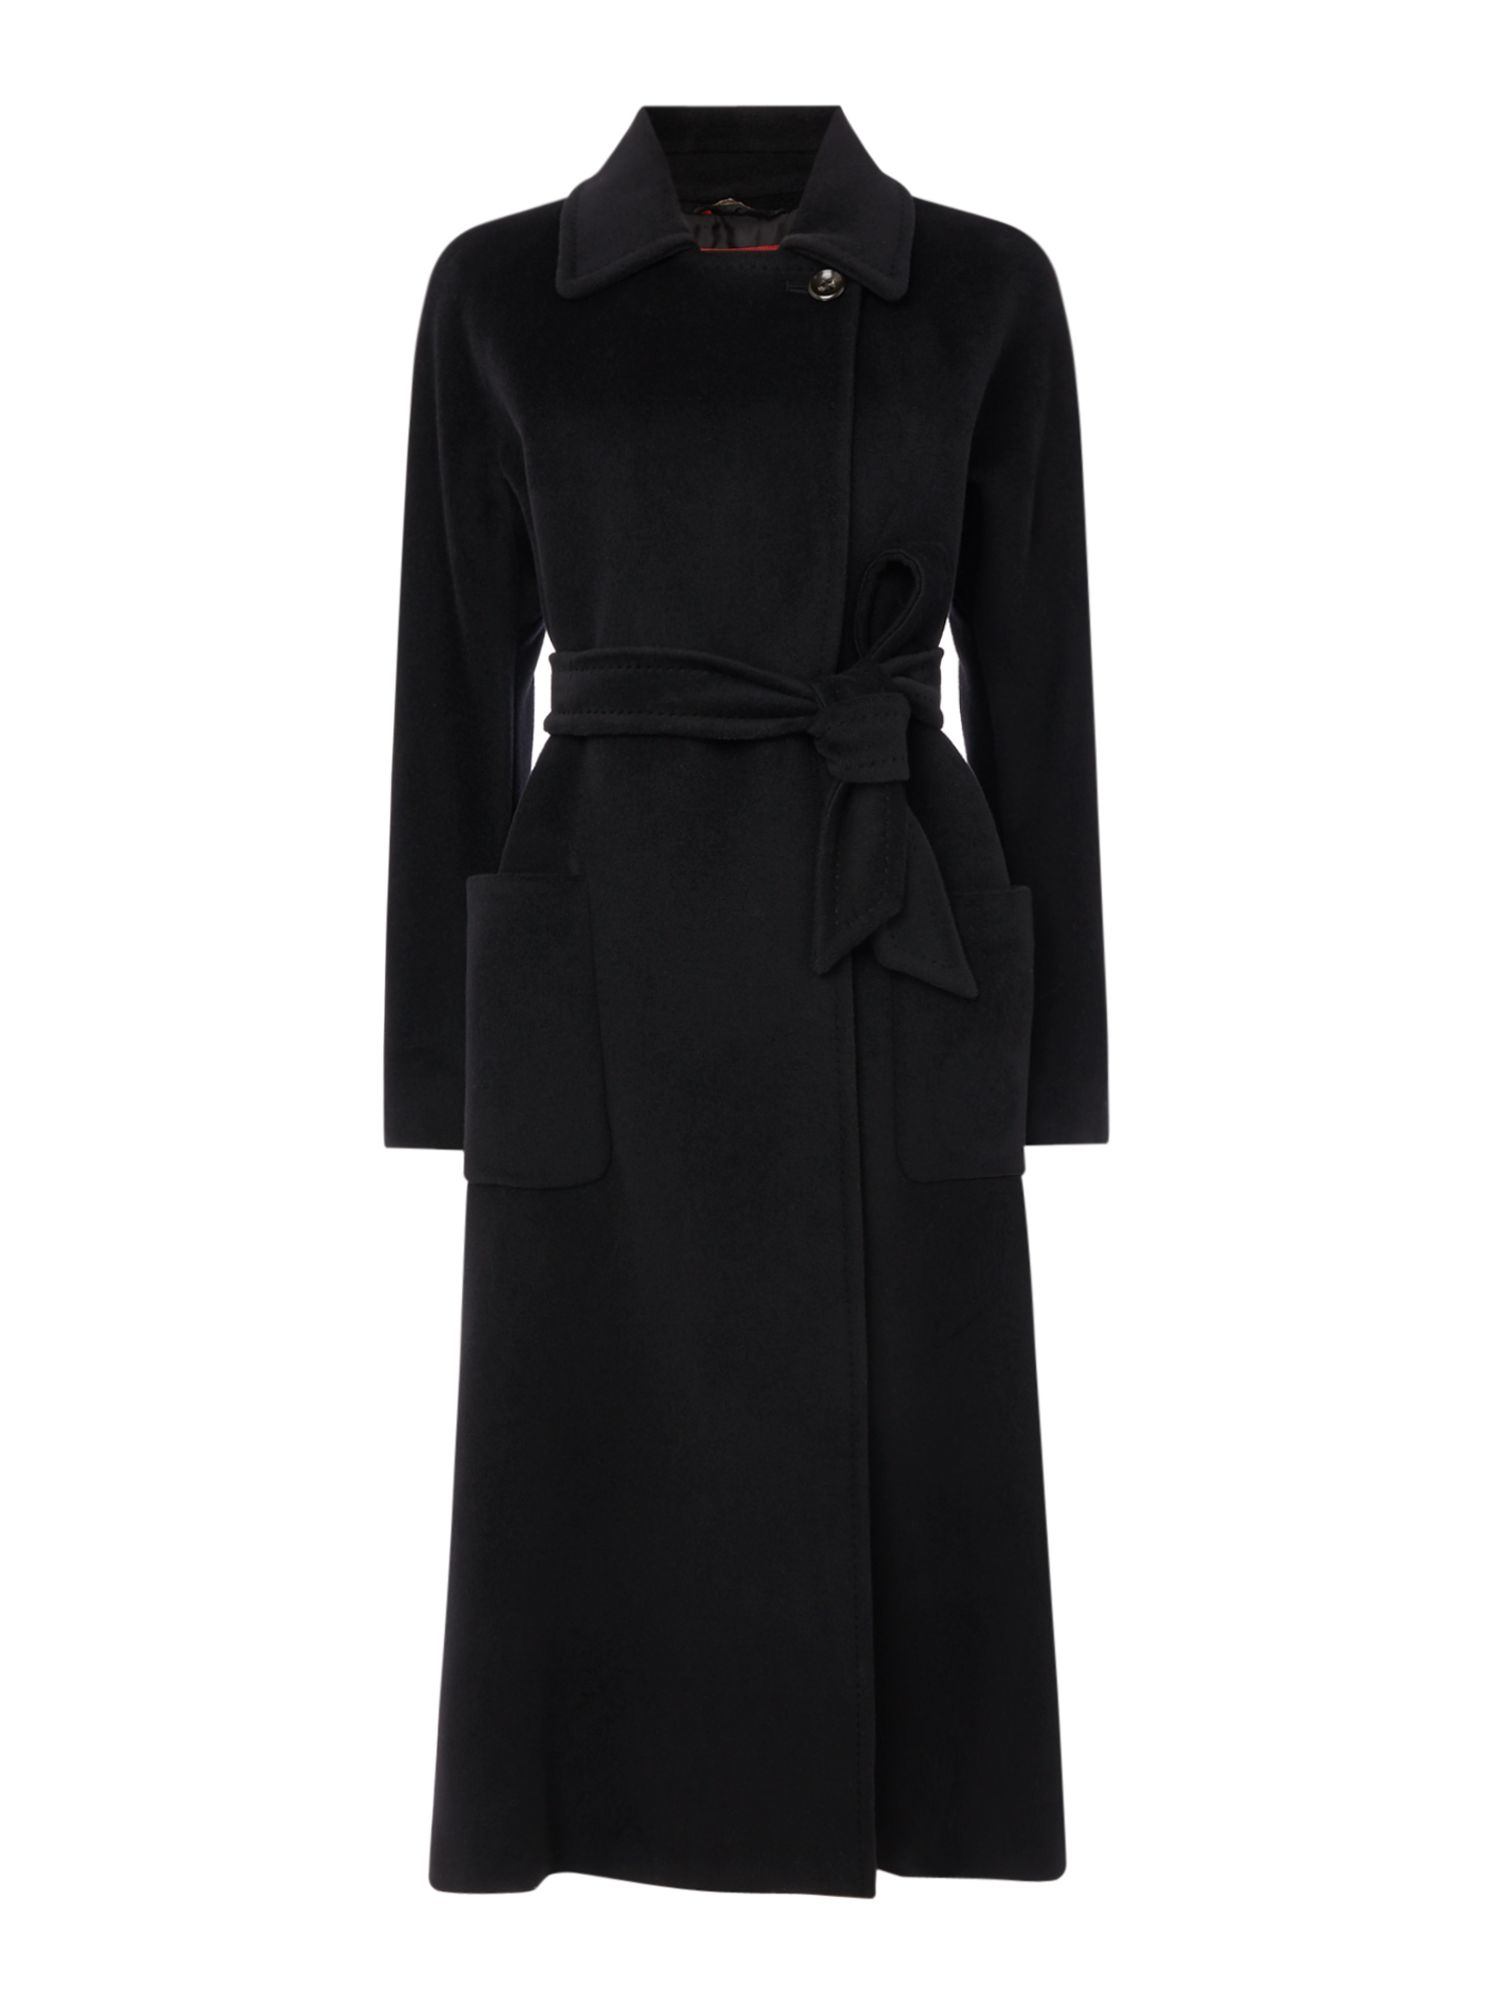 Max Mara Studio Gardena long wool coat with belt, Black